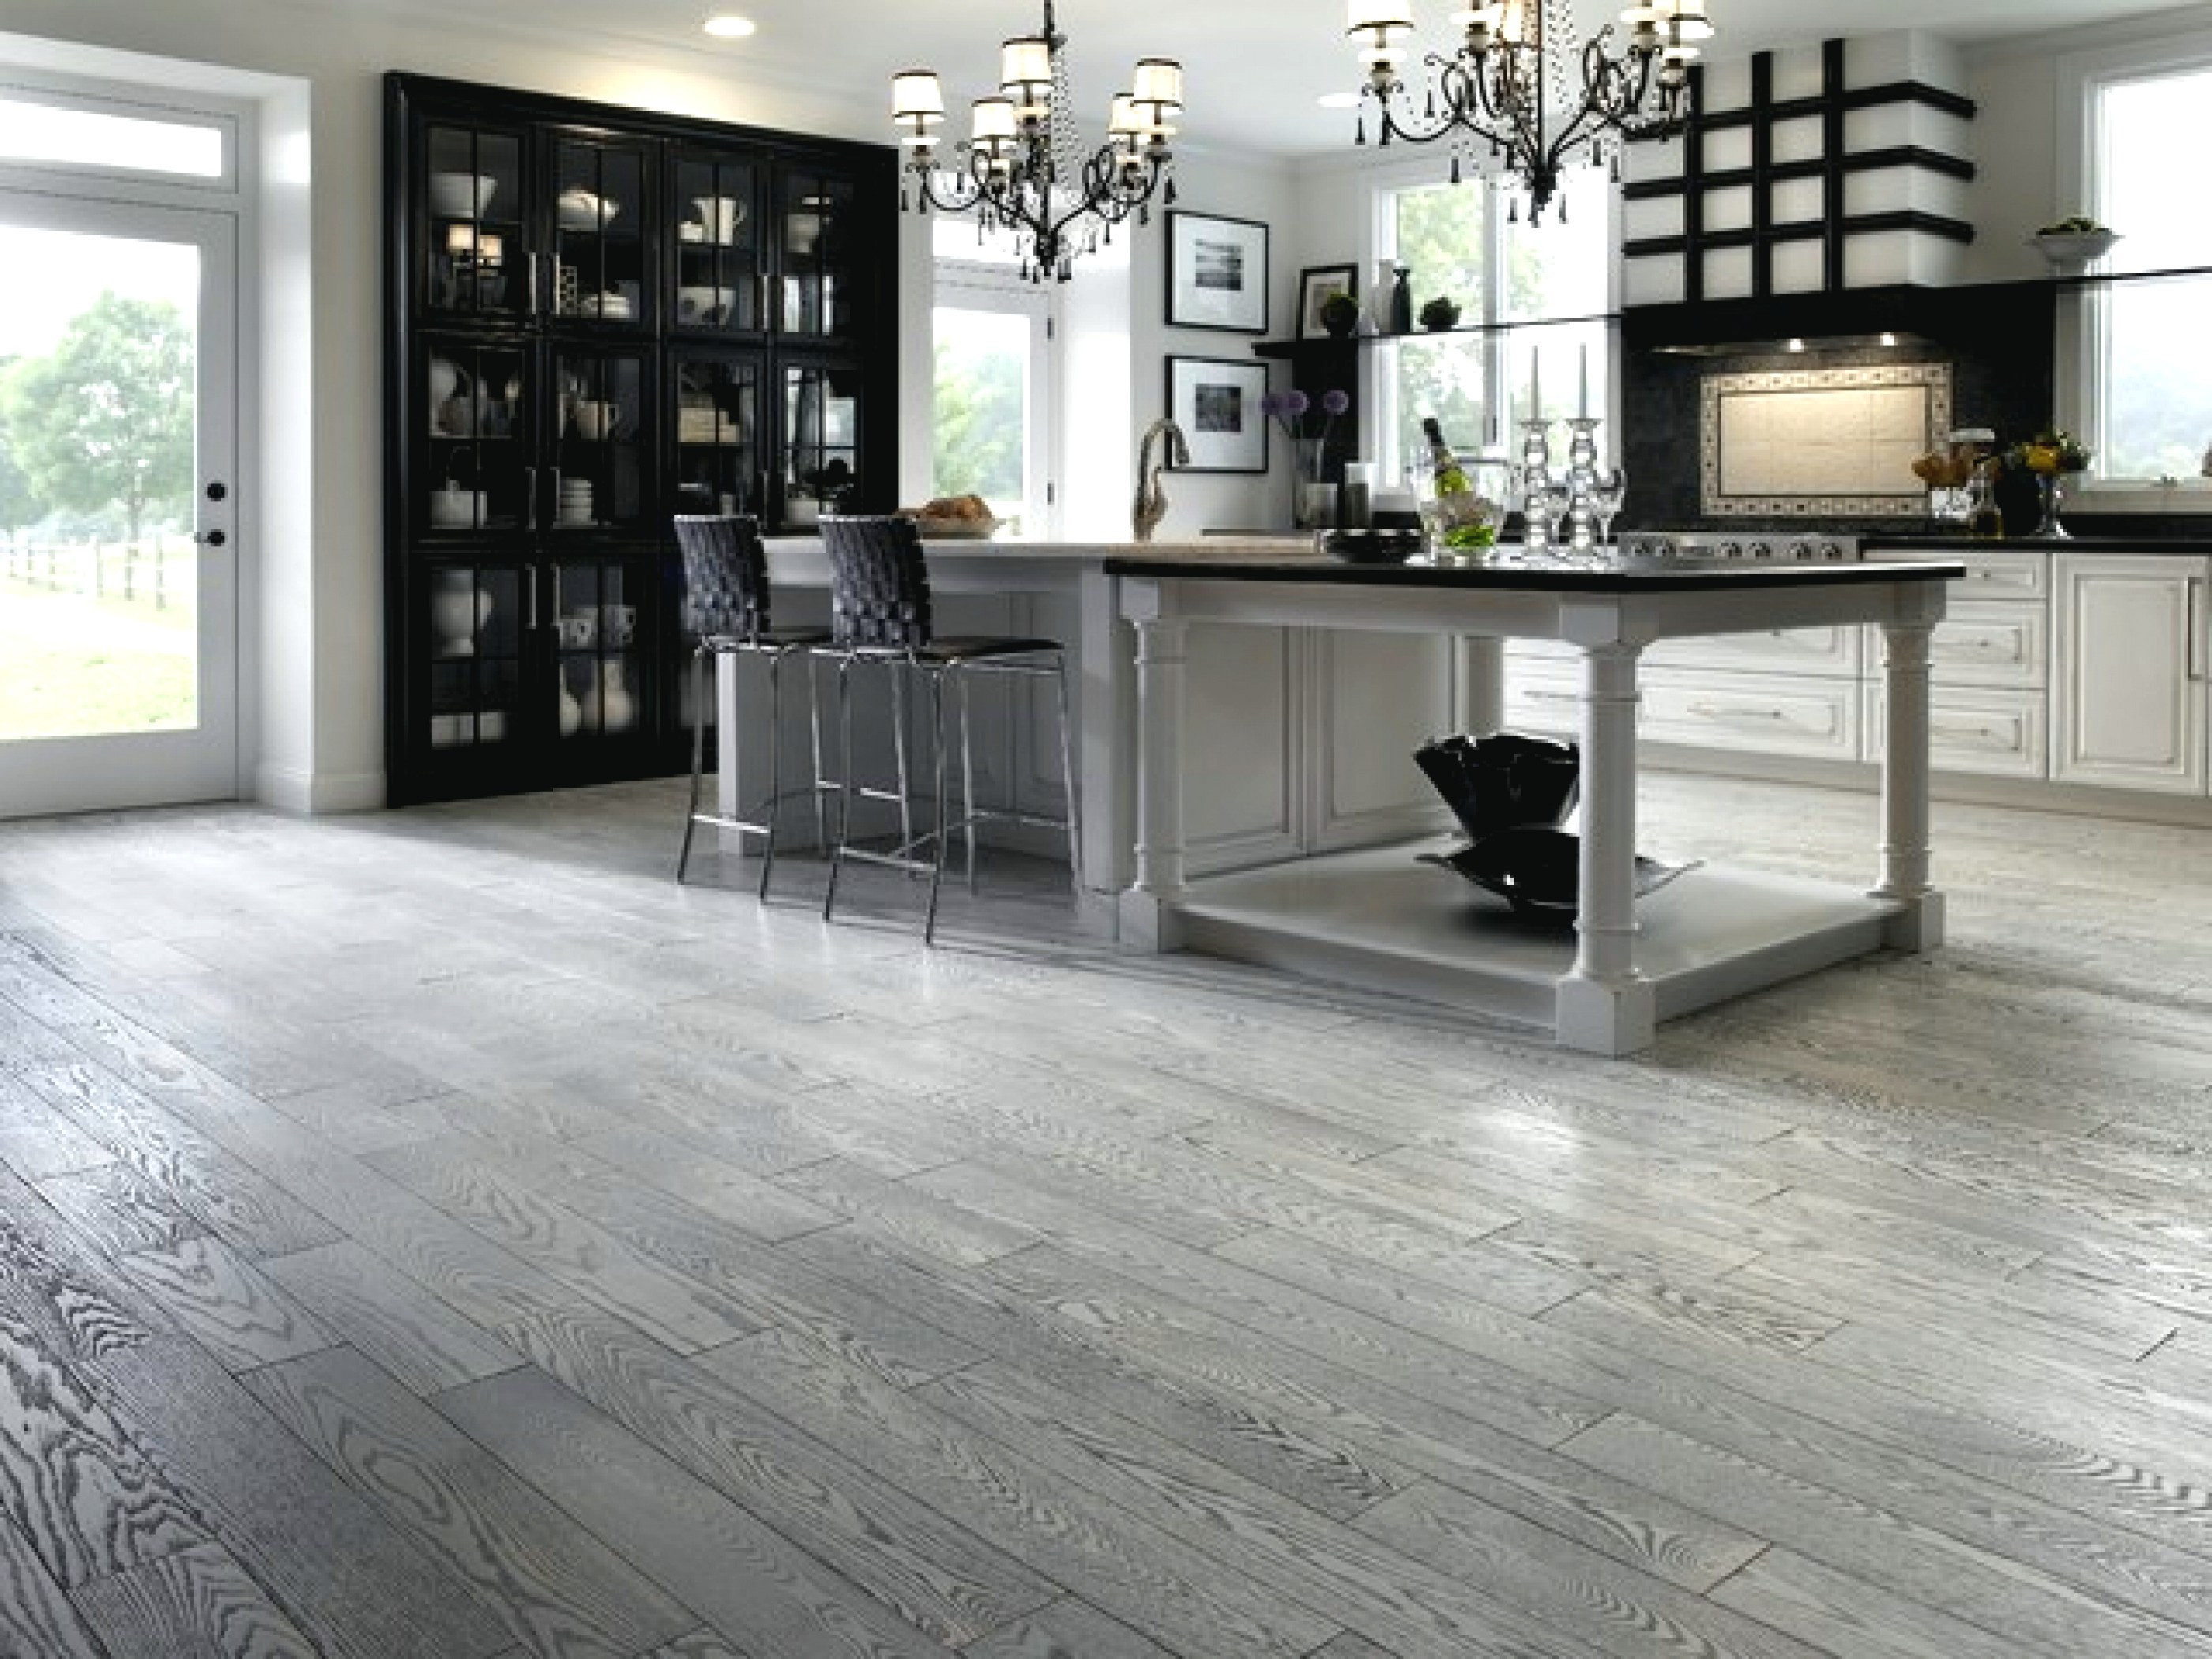 images of hardwood floor colors of grey stained kitchen cabinets inspirational floor grey hardwood in floor grey hardwood floors gray flooring staingrey in kitchen